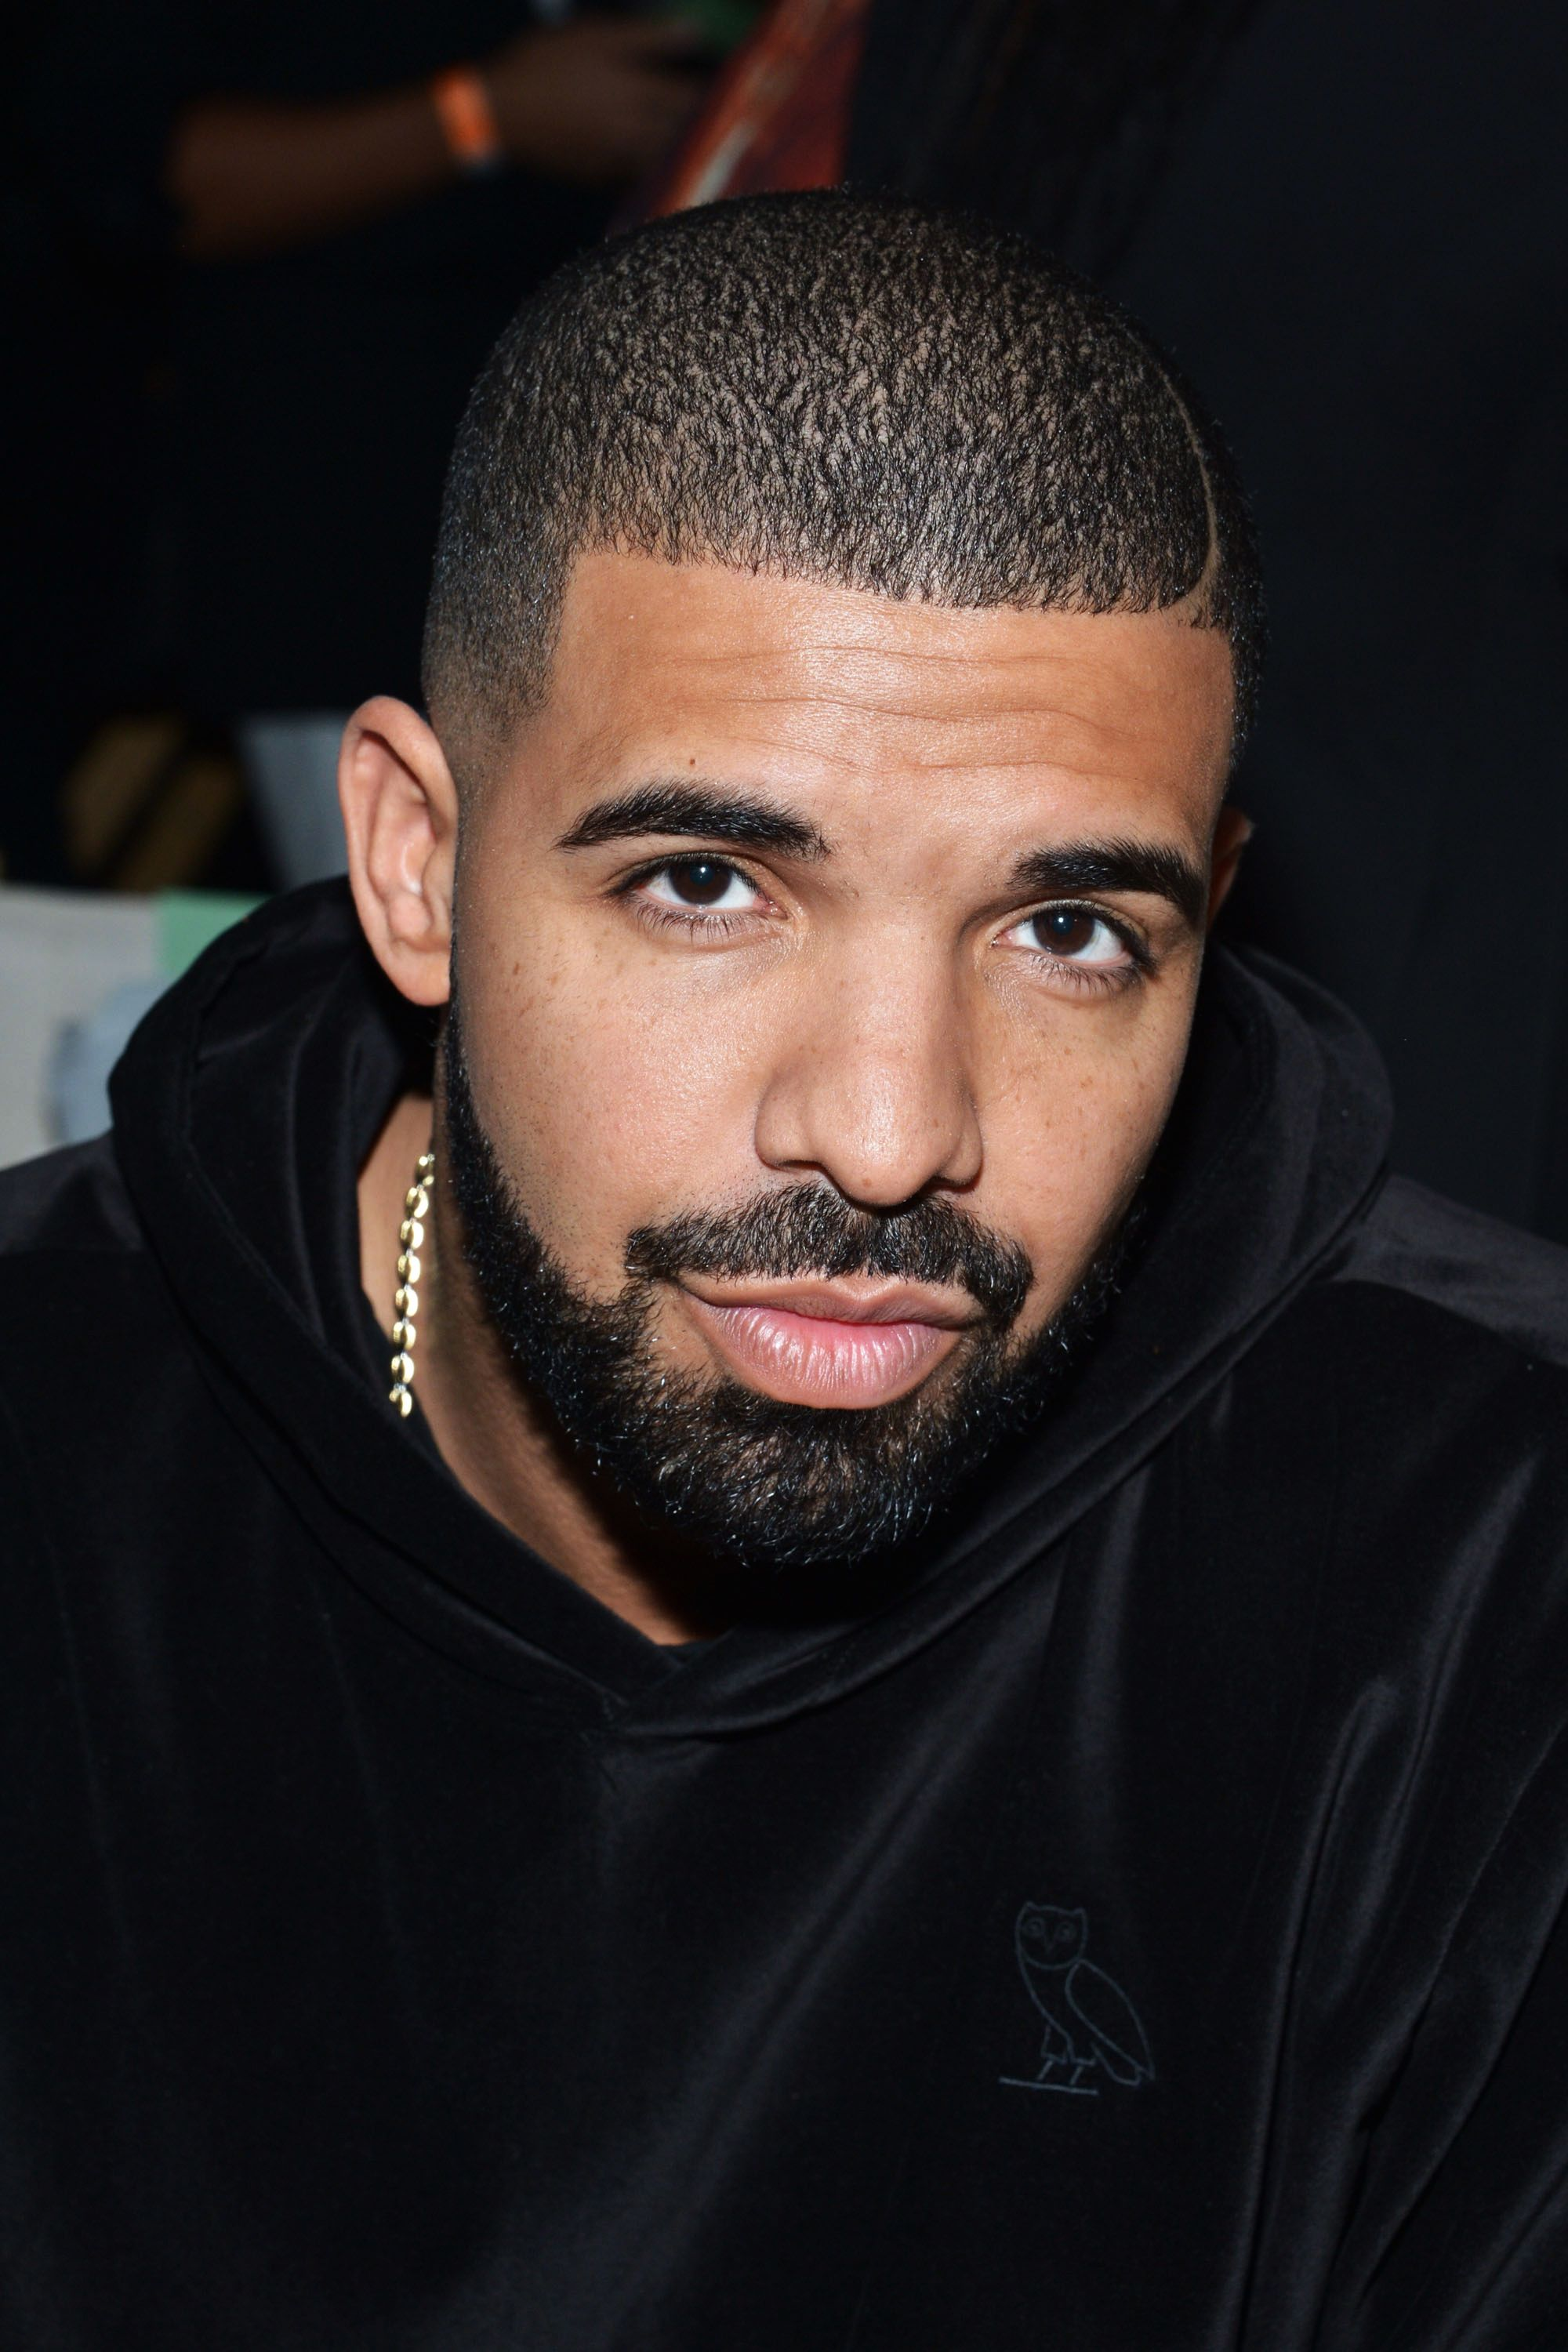 Drake No Eyebrows : drake, eyebrows, Close, Analysis, Drake's, Eyebrow, Evolution